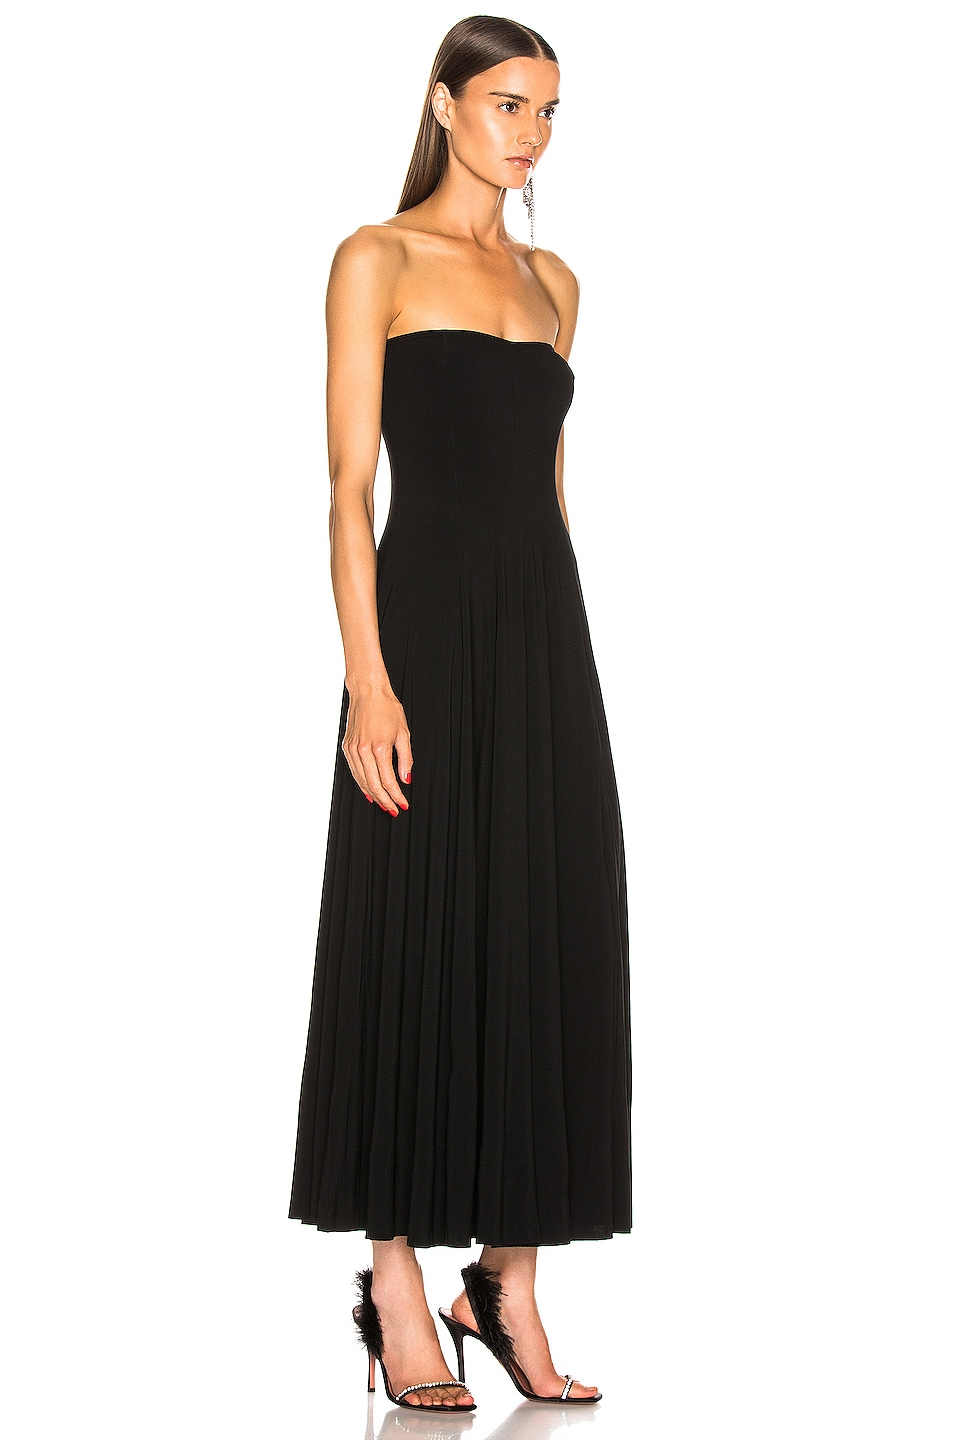 Image 2 of Norma Kamali Strapless Flared Midcalf Dress in Black